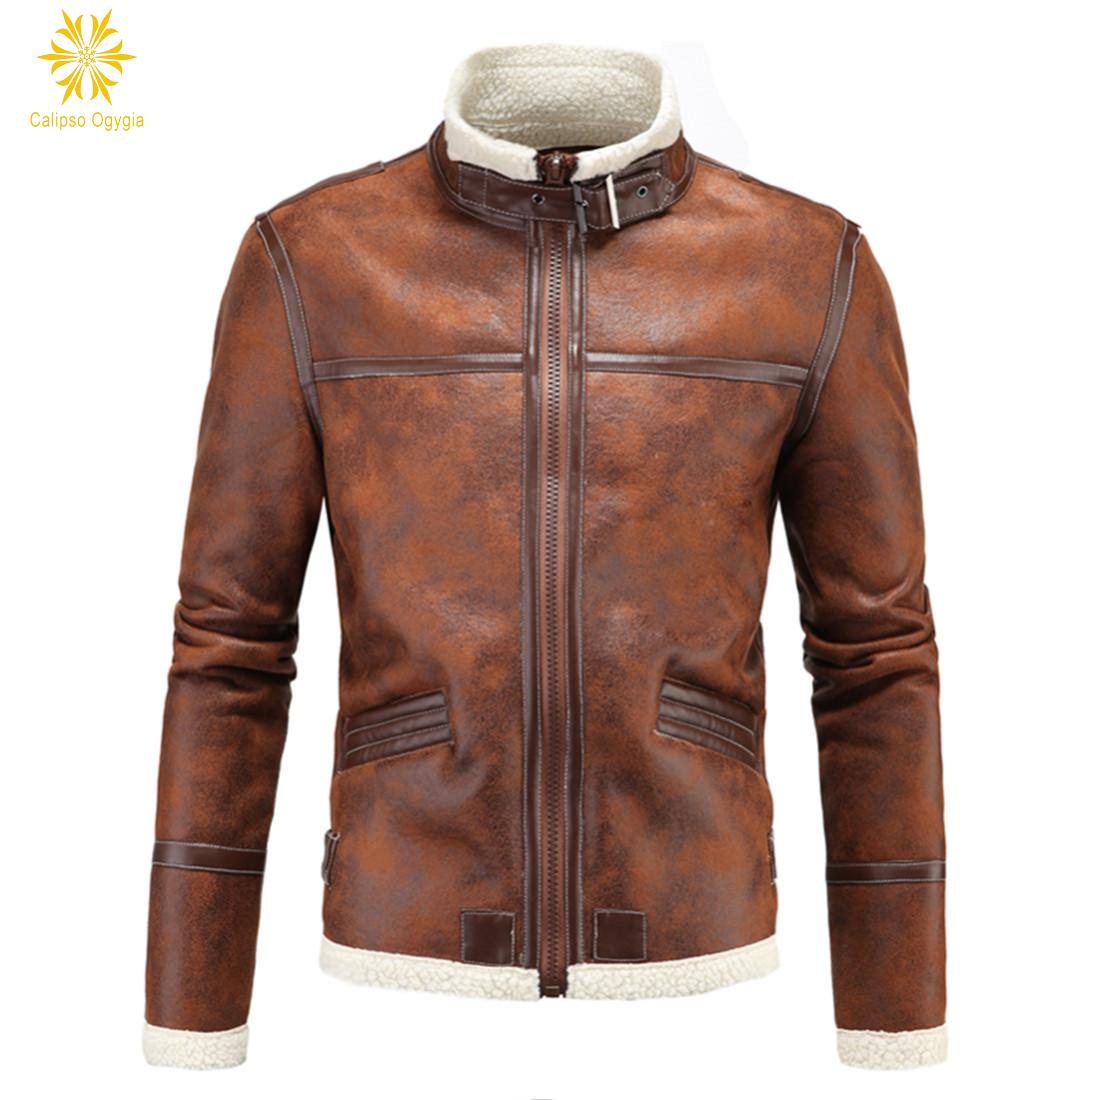 Calipso Ogygia Winter Men's Lambskin Brown Leather Jacket Black Slim fit Biker Motorcycle jacket Faux Fur Coats Brand Colthing